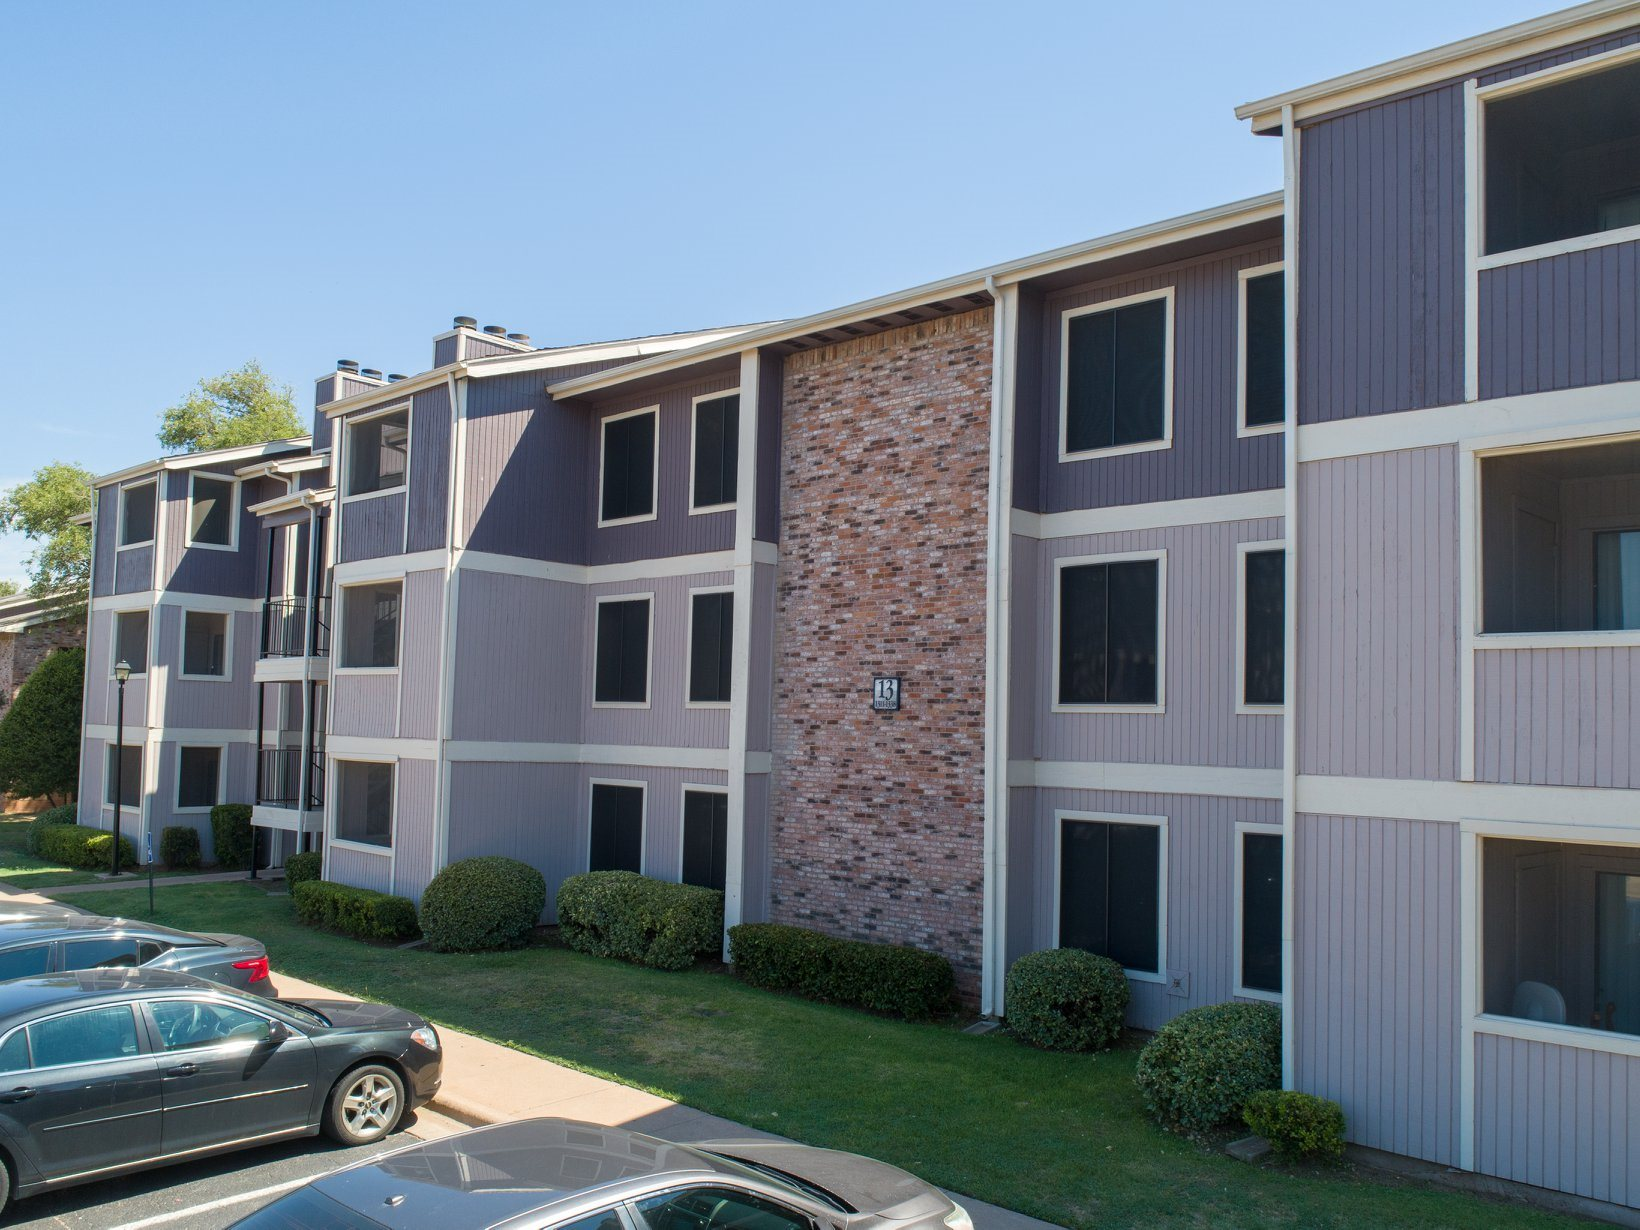 Timber Ridge Apartments in Abilene TX